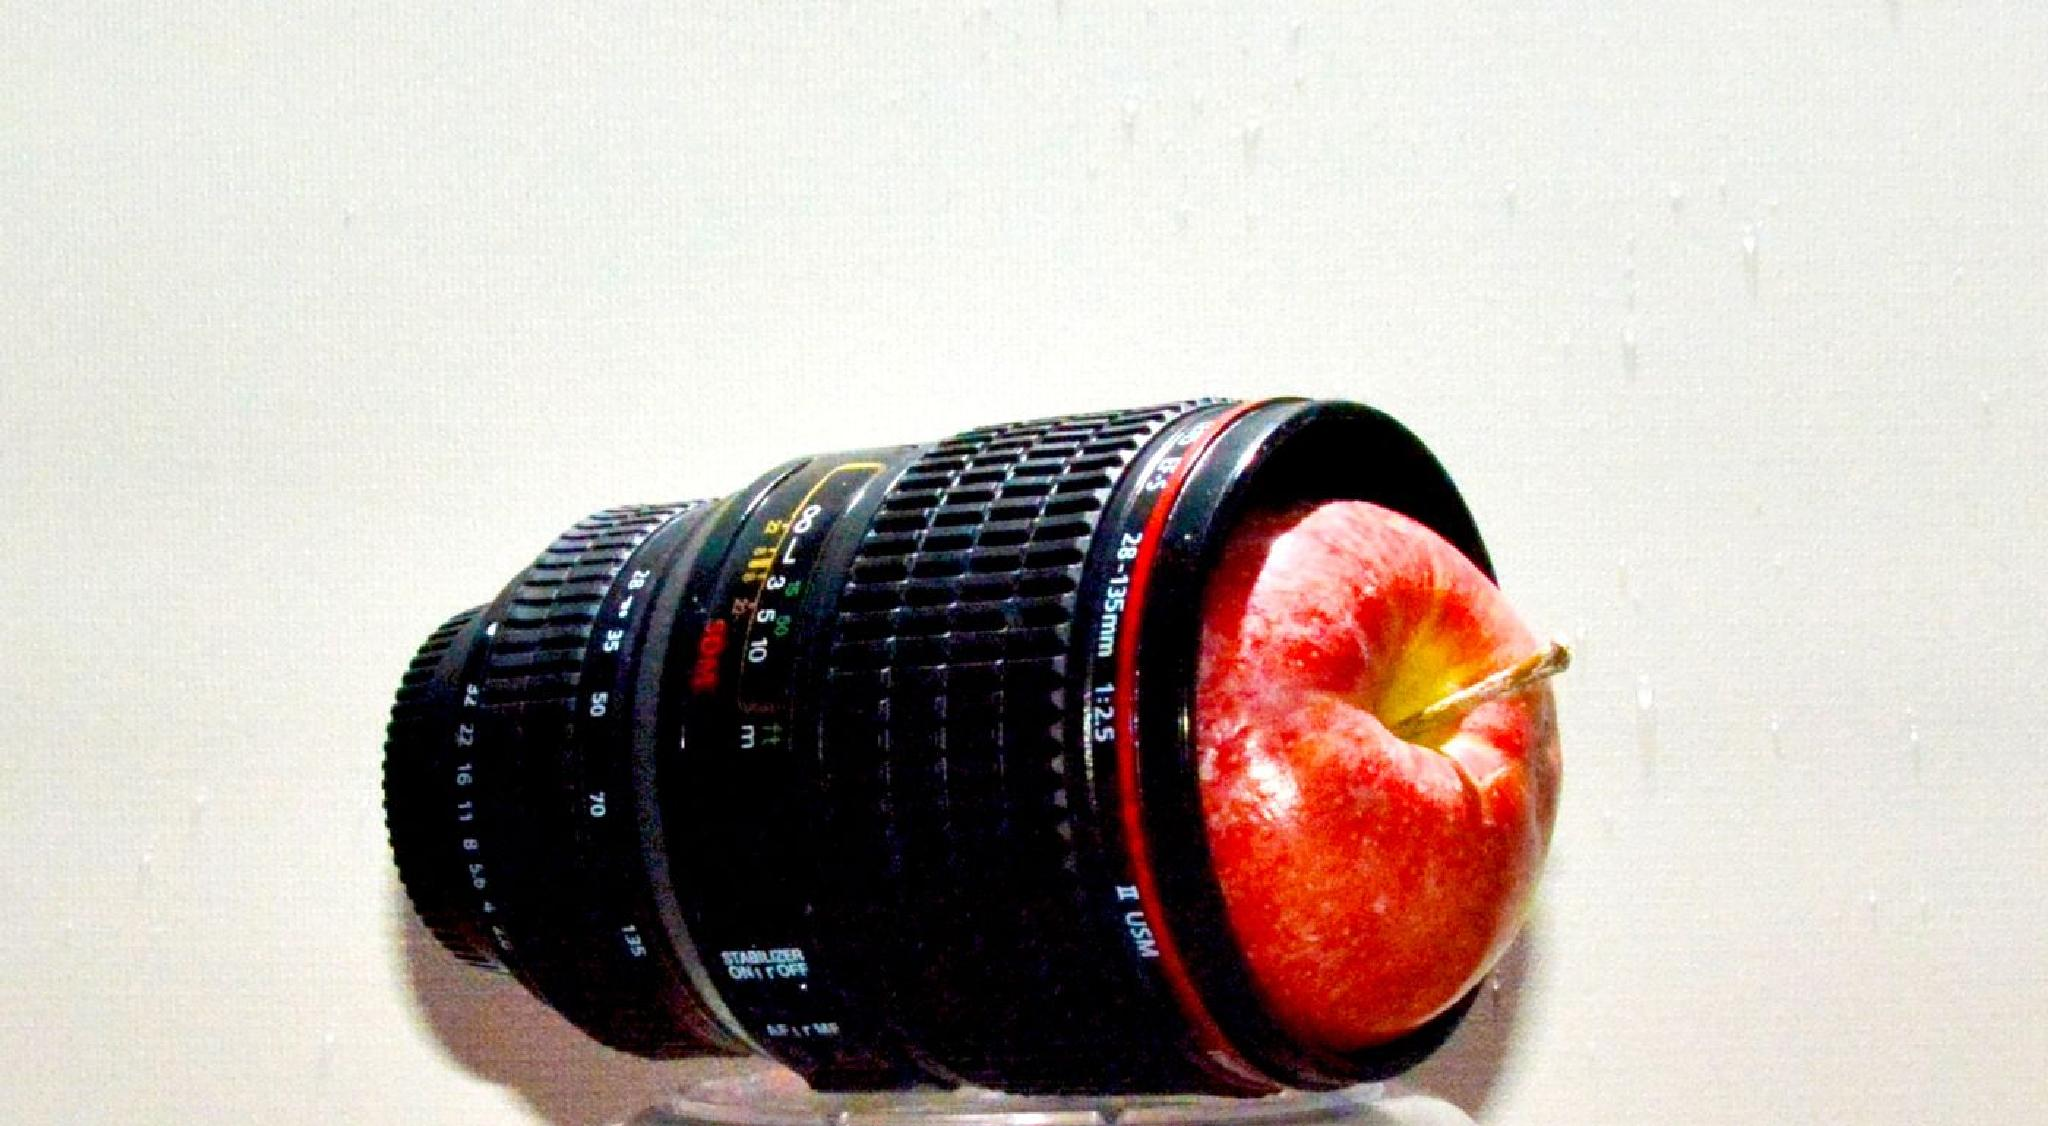 Apple style of lenses by deville66